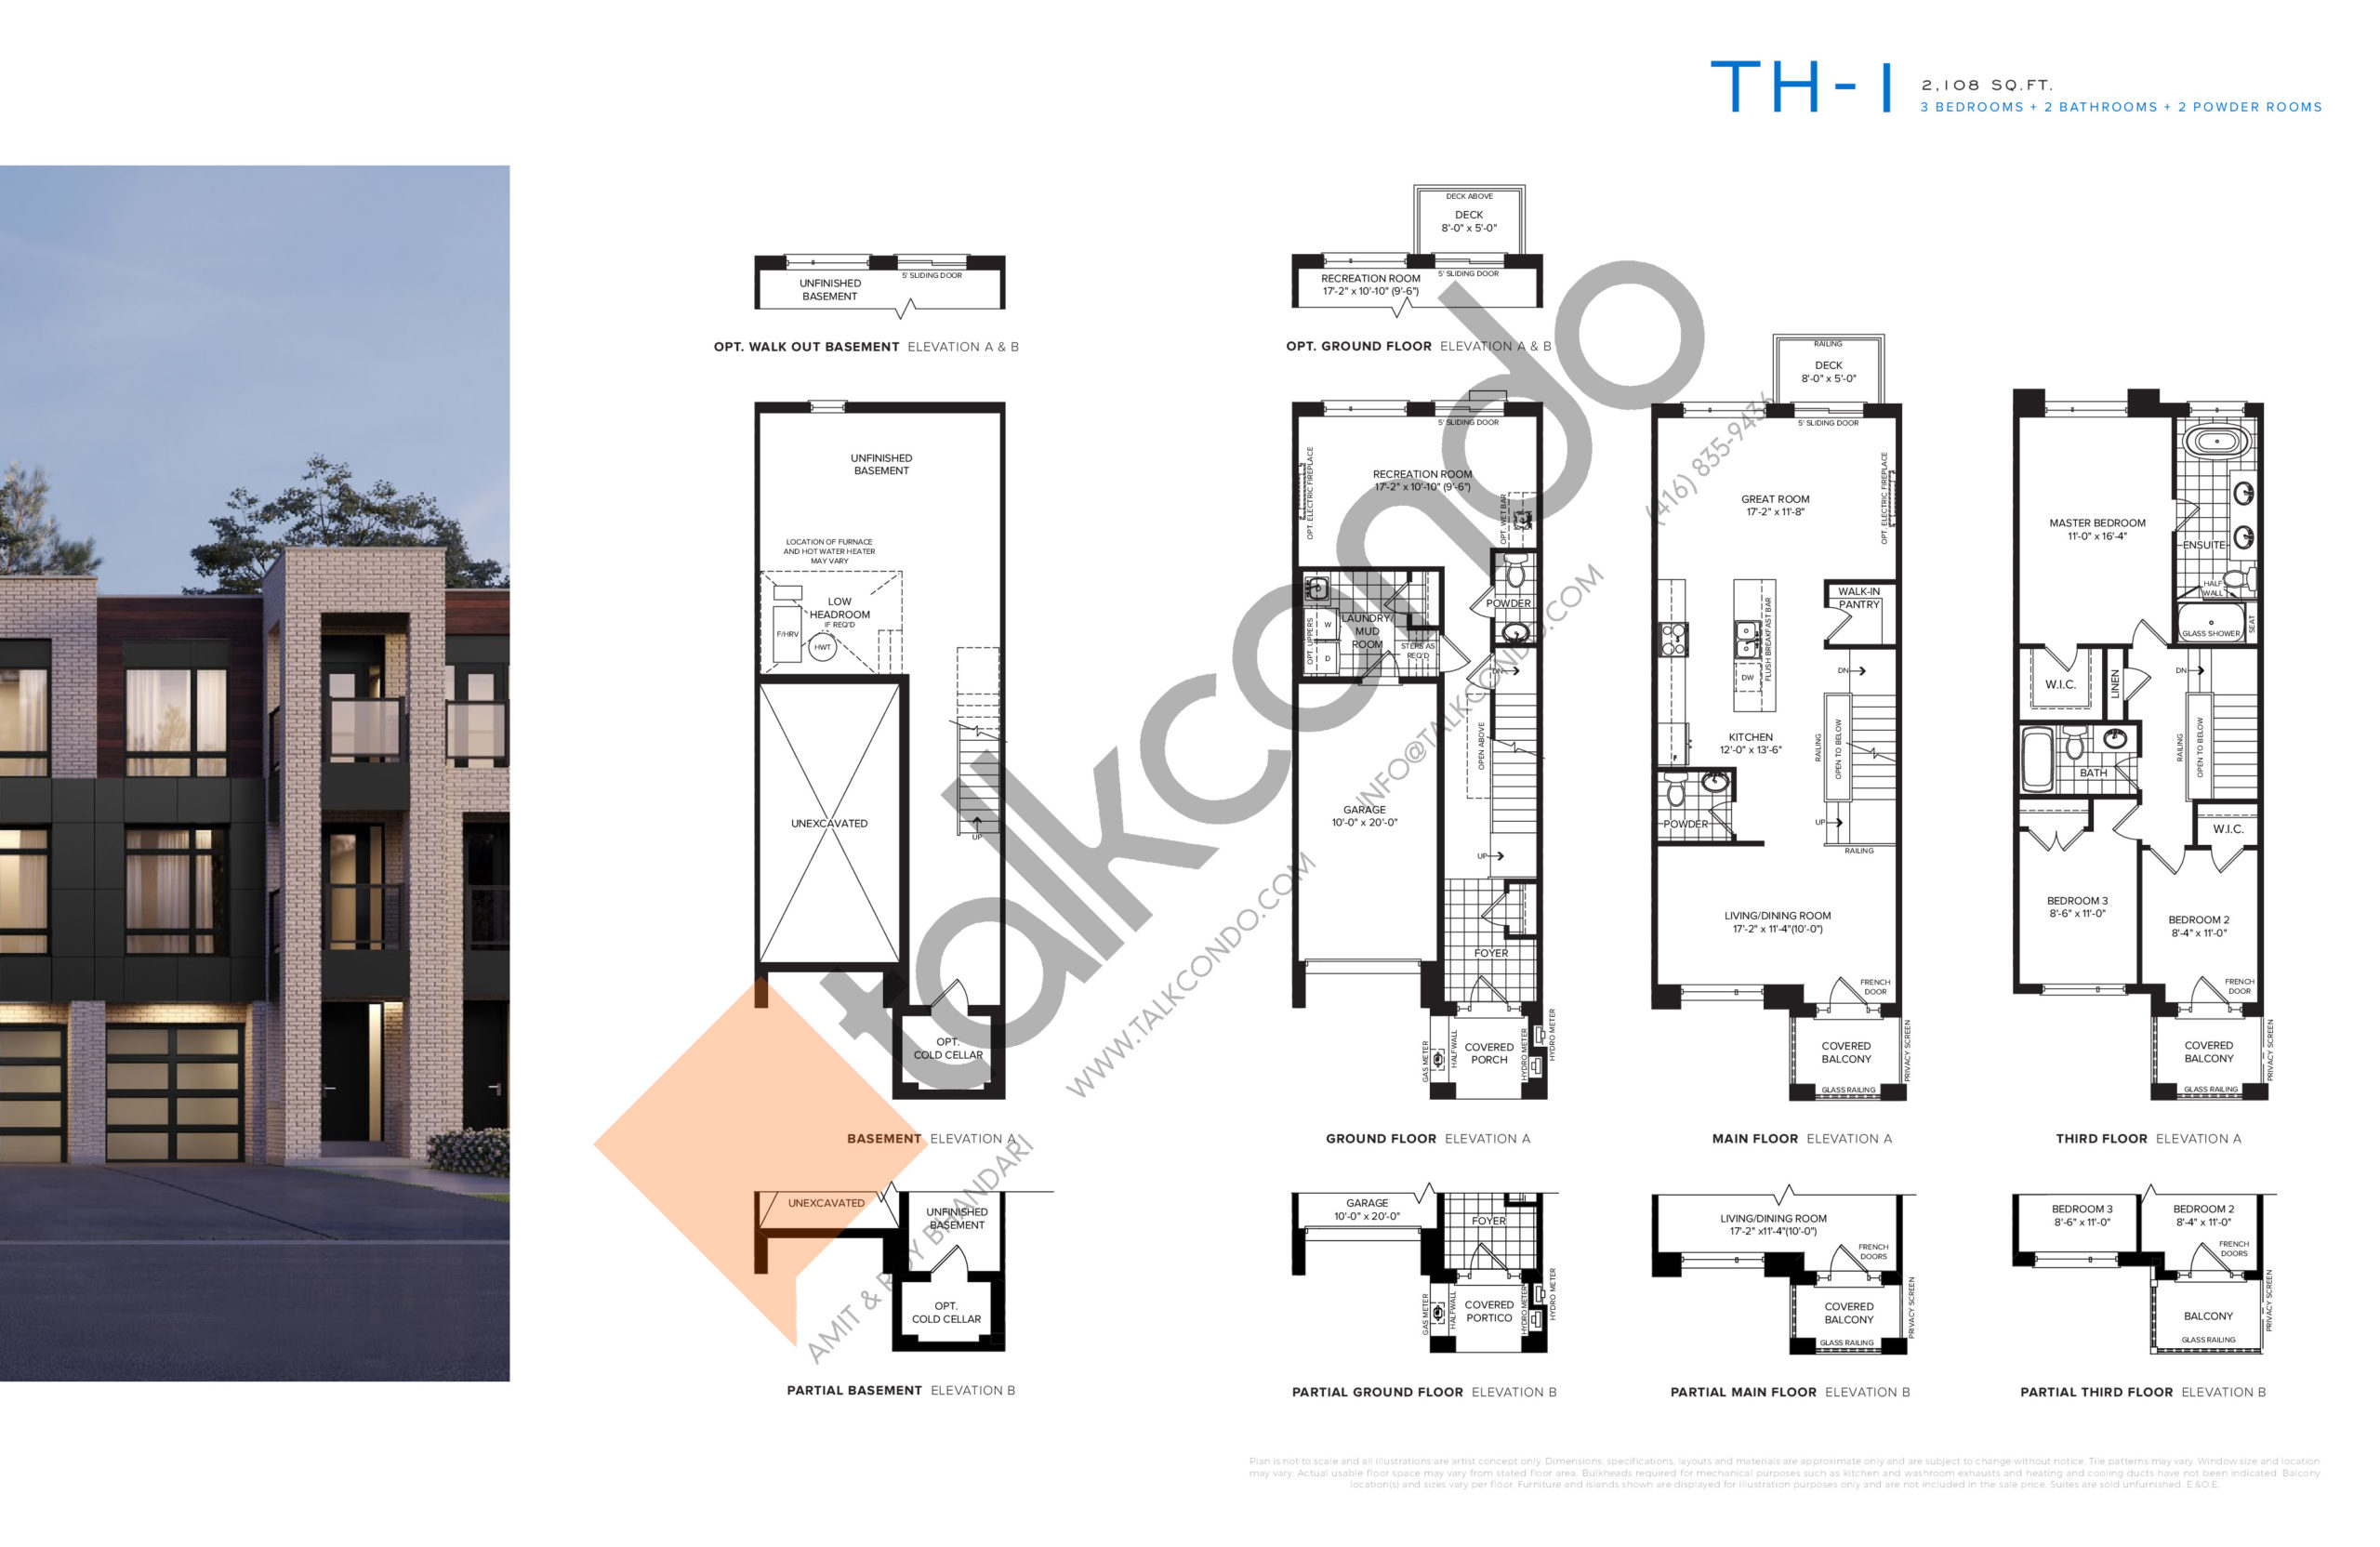 TH-1 Floor Plan at SXSW Ravine Towns - 2108 sq.ft